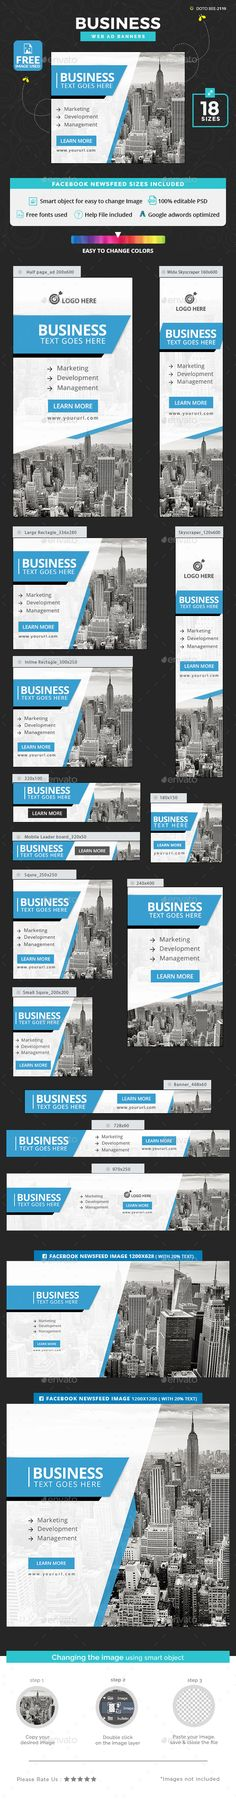 #Business #Banners - Banners & Ads #Web Elements Download here: https://graphicriver.net/item/business-banners/20192823?ref=alena994